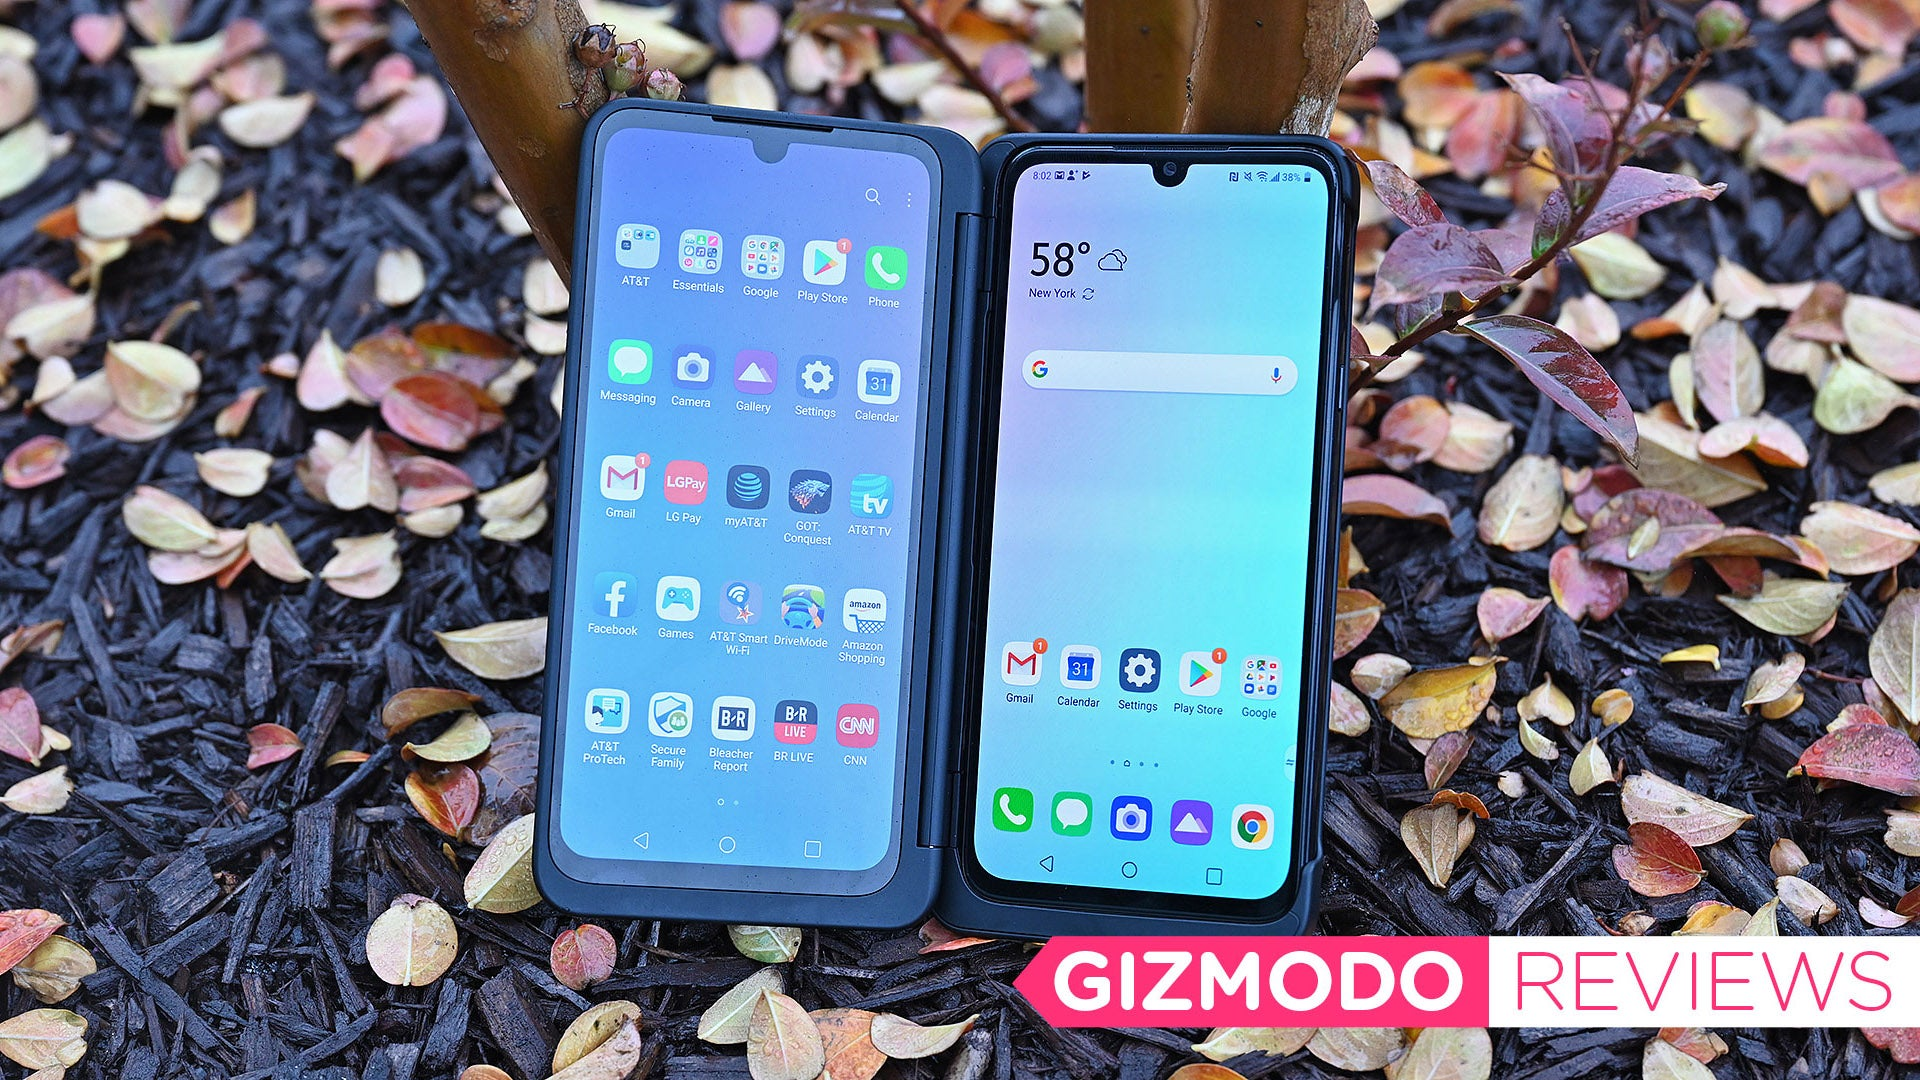 LG's G8X Dual Screen Phone Gives You The Most Screen For Your Money